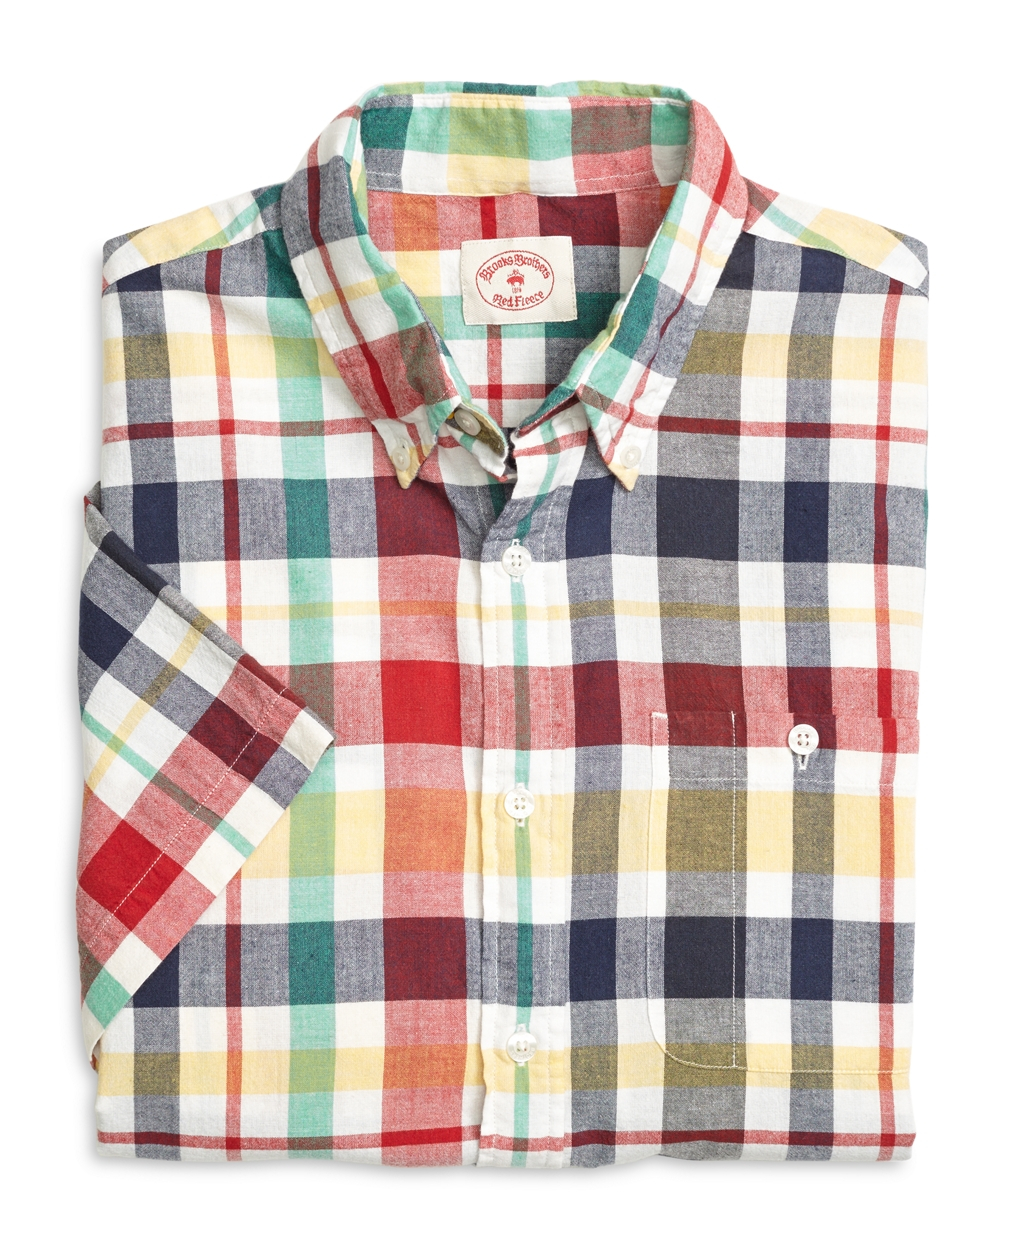 Lyst - Brooks Brothers Red Madras Short-sleeve Sport Shirt in Red ... 986bb7e1ed3e